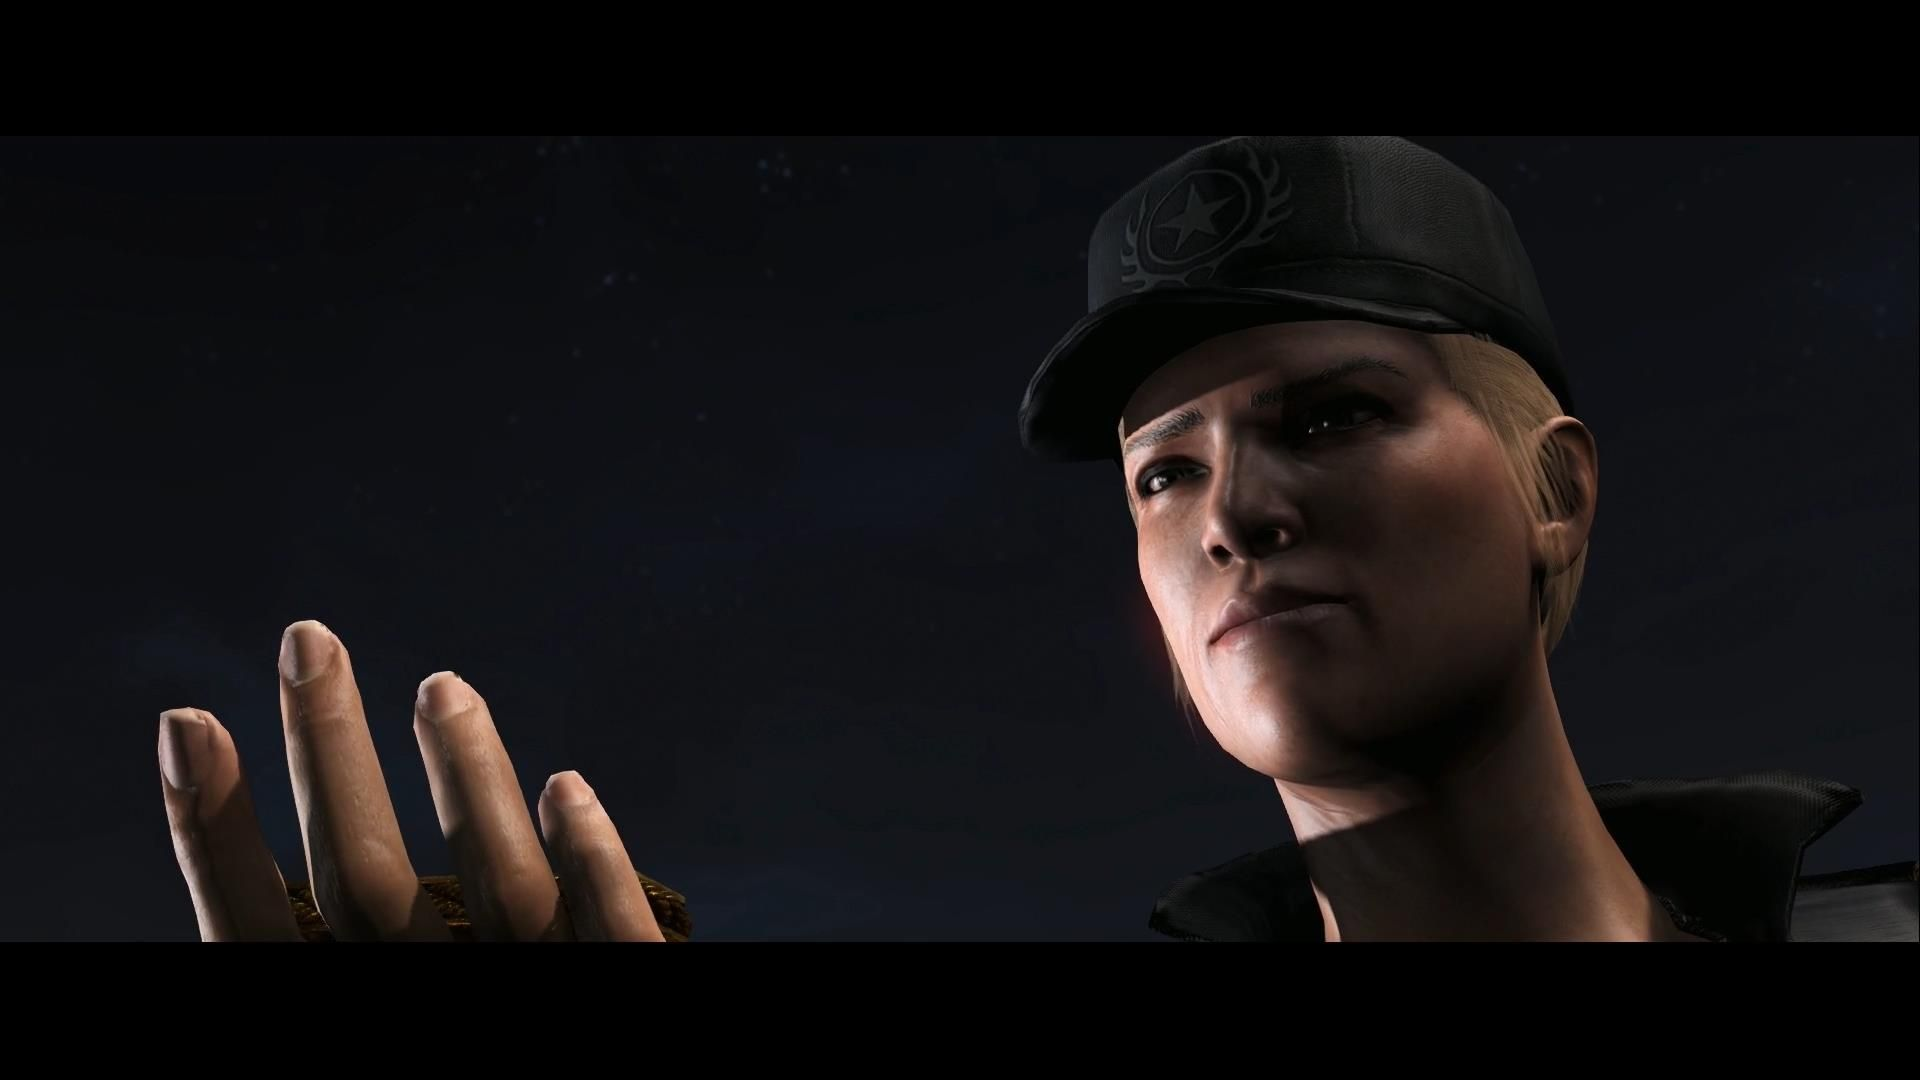 Mortal Kombat Sonya Blade Wallpaper